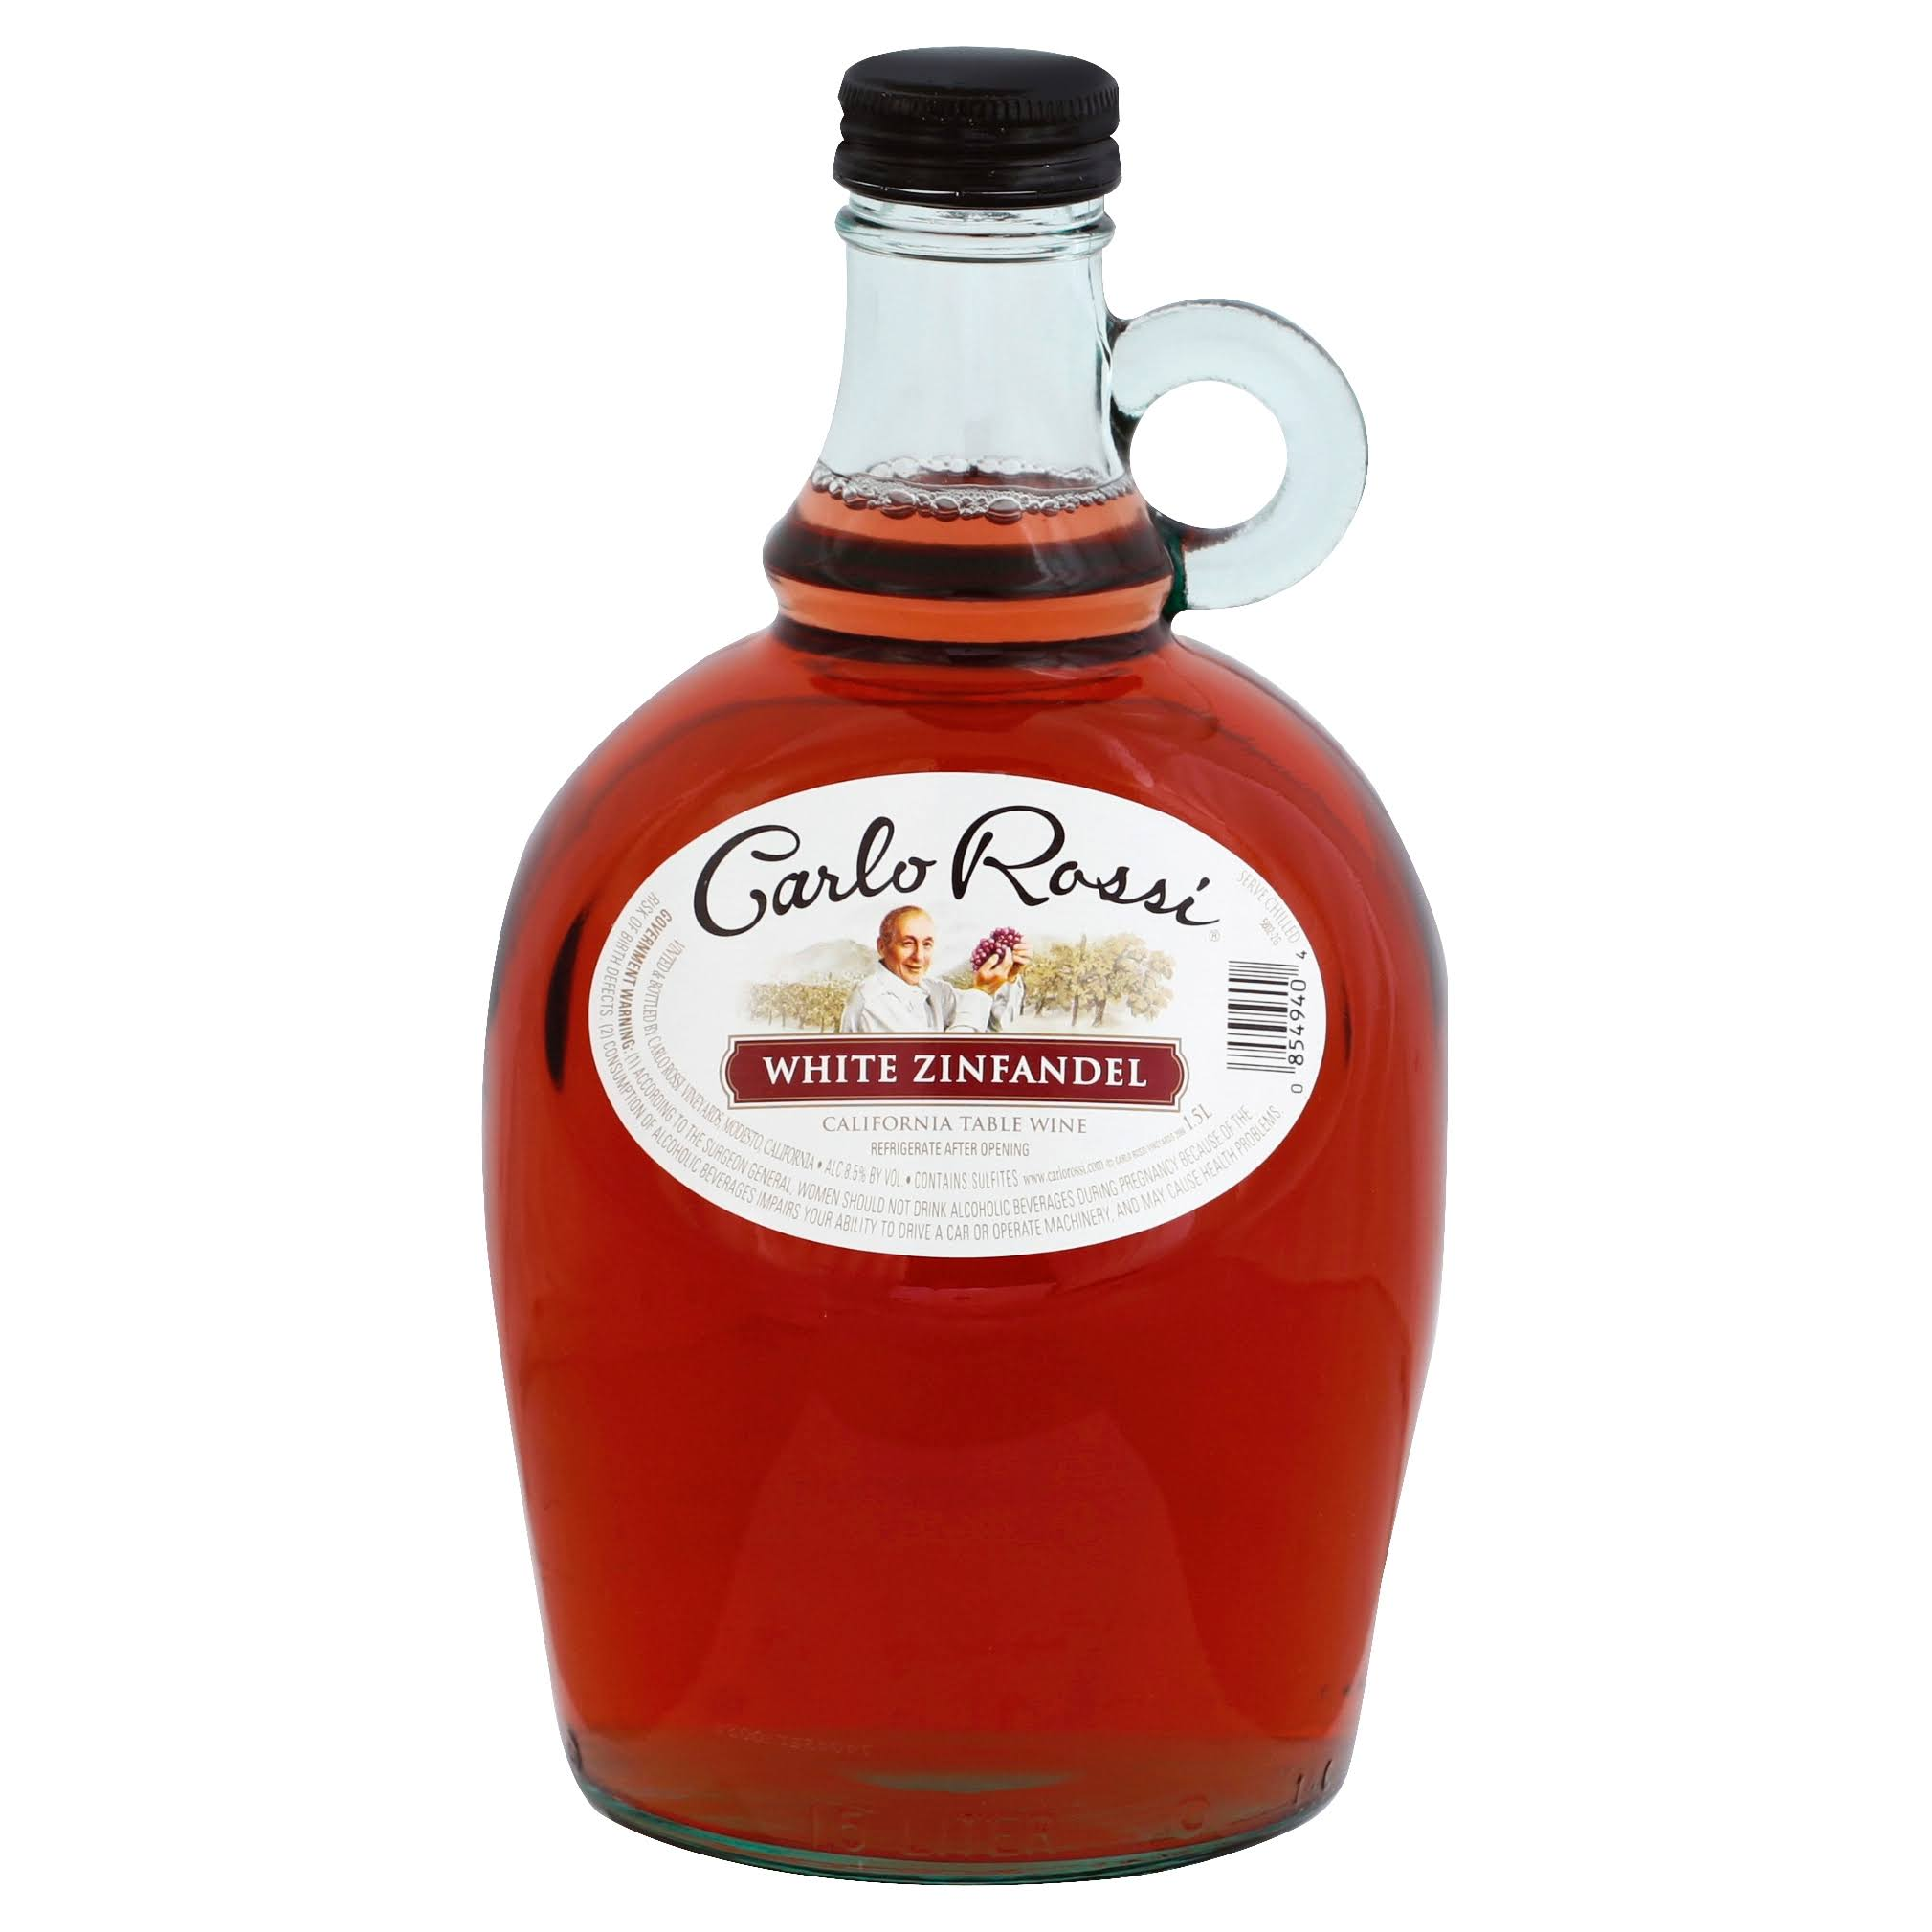 Carlo Rossi White Zinfandel, California Table Wine - 1.5 l